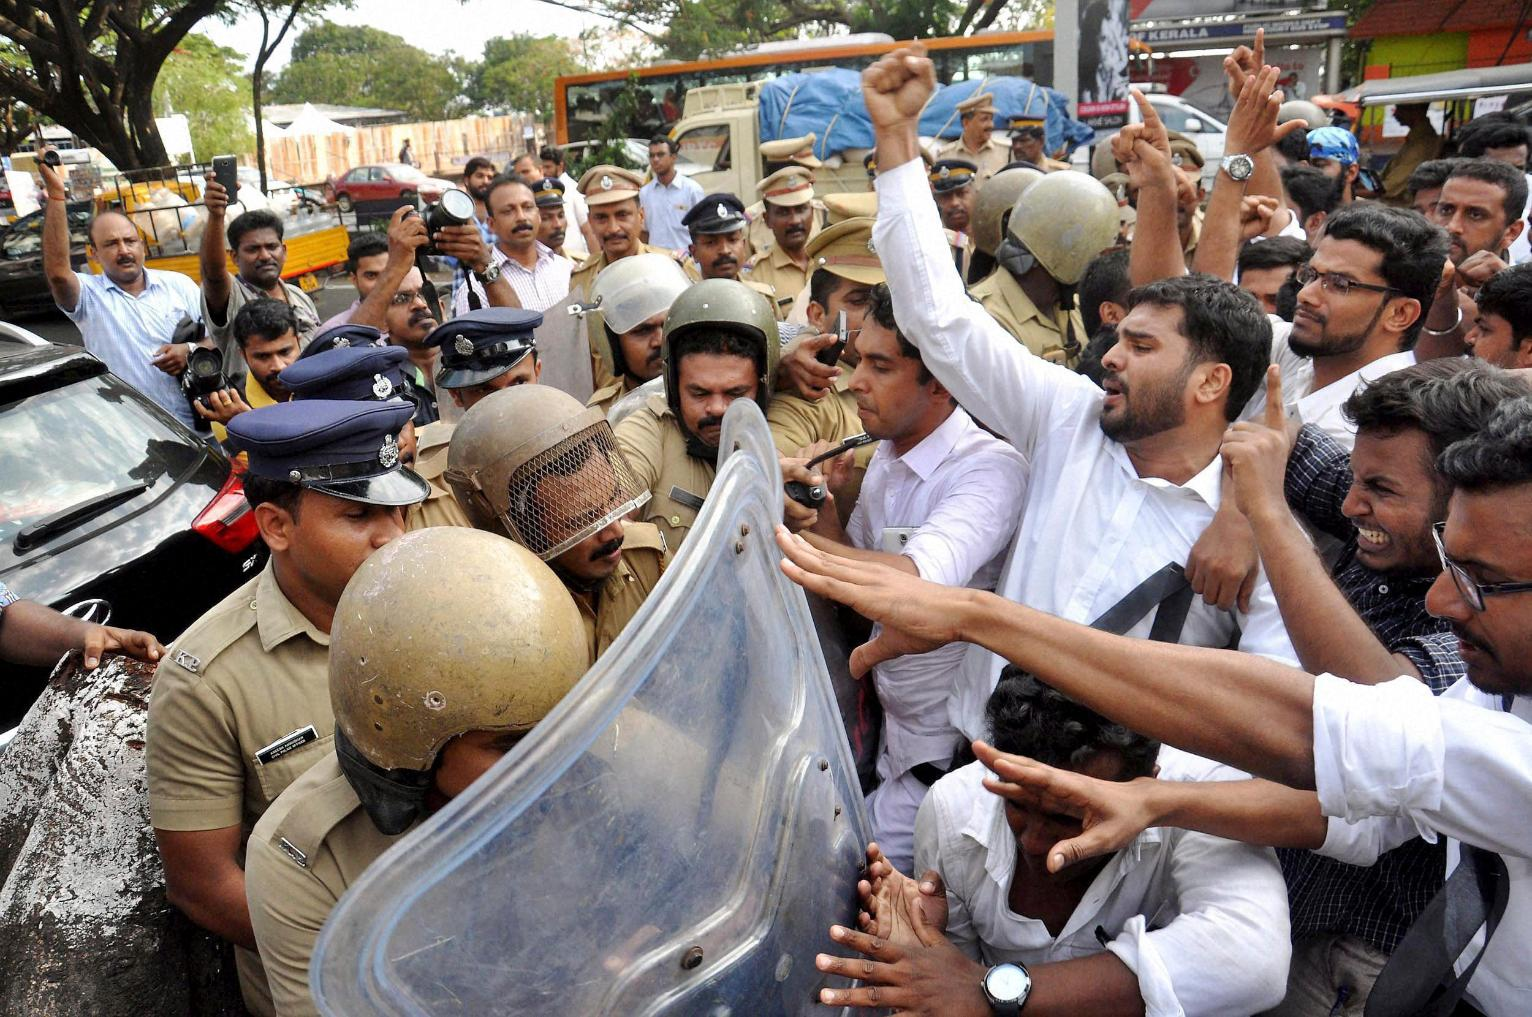 dalits in indien